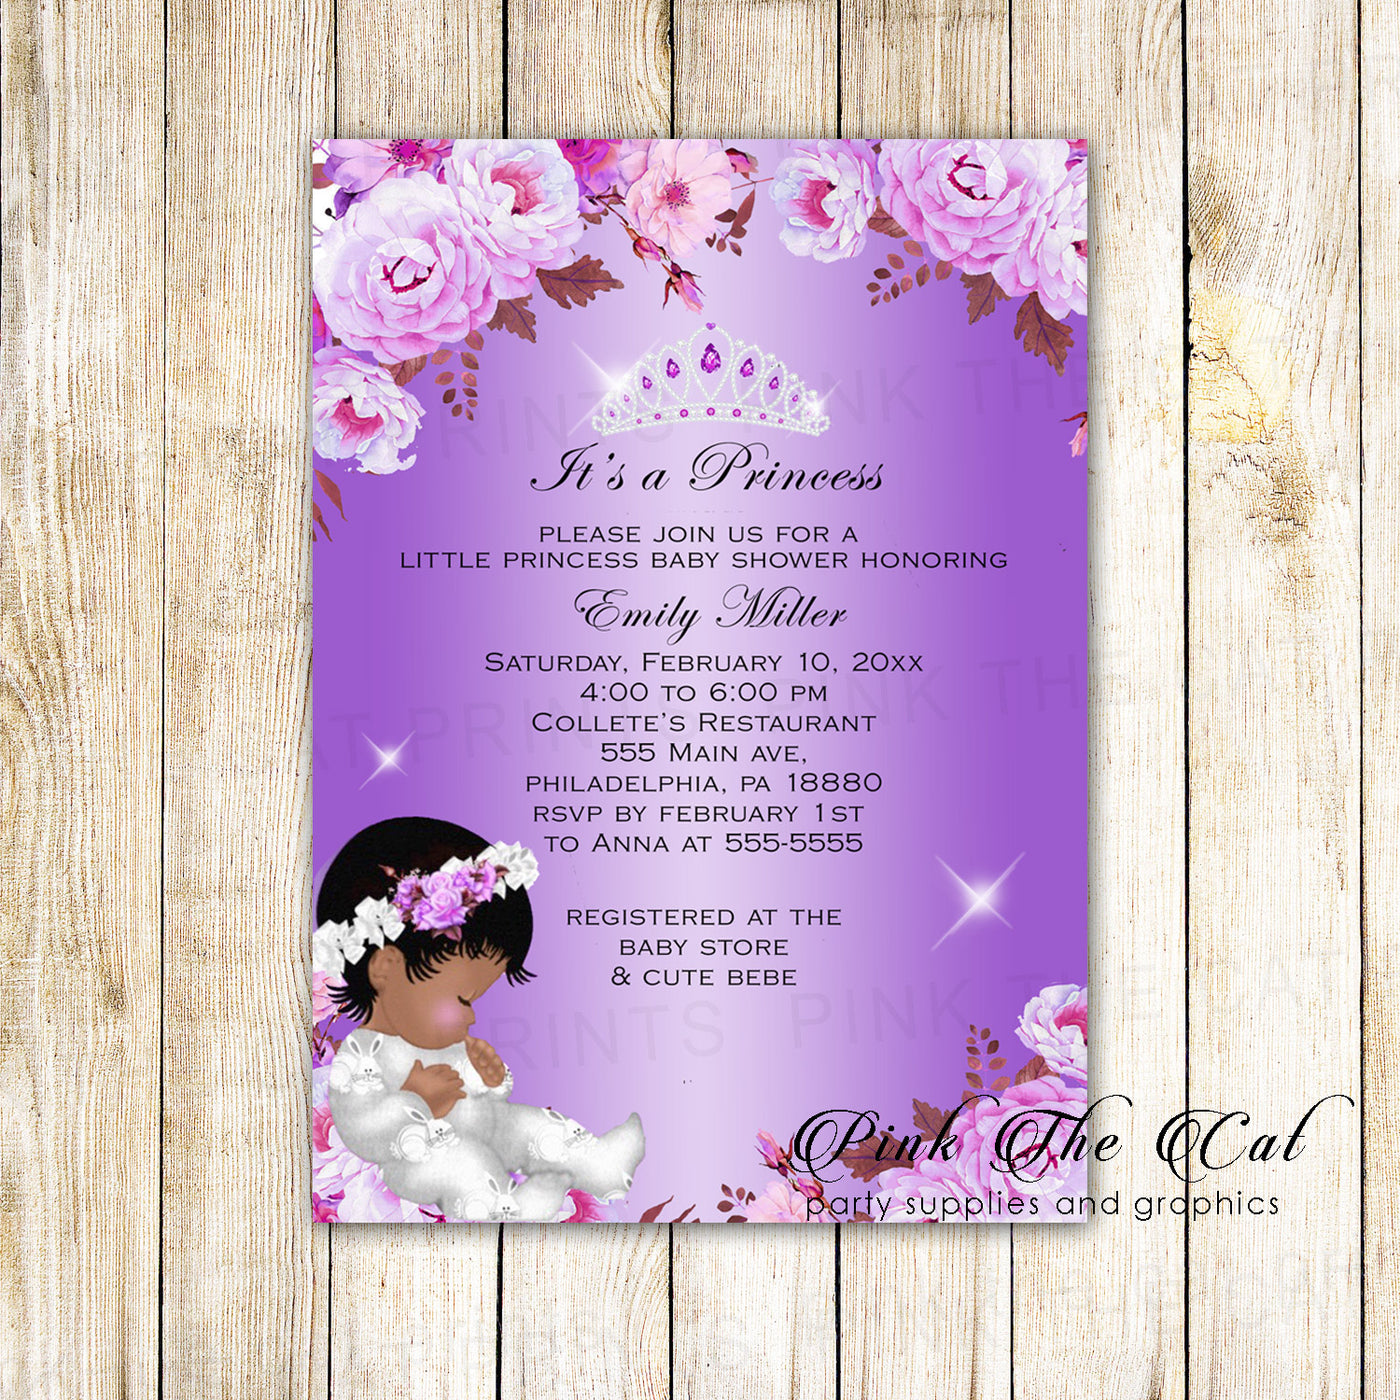 30 Invitations Princess Baby Shower African American Purple Floral